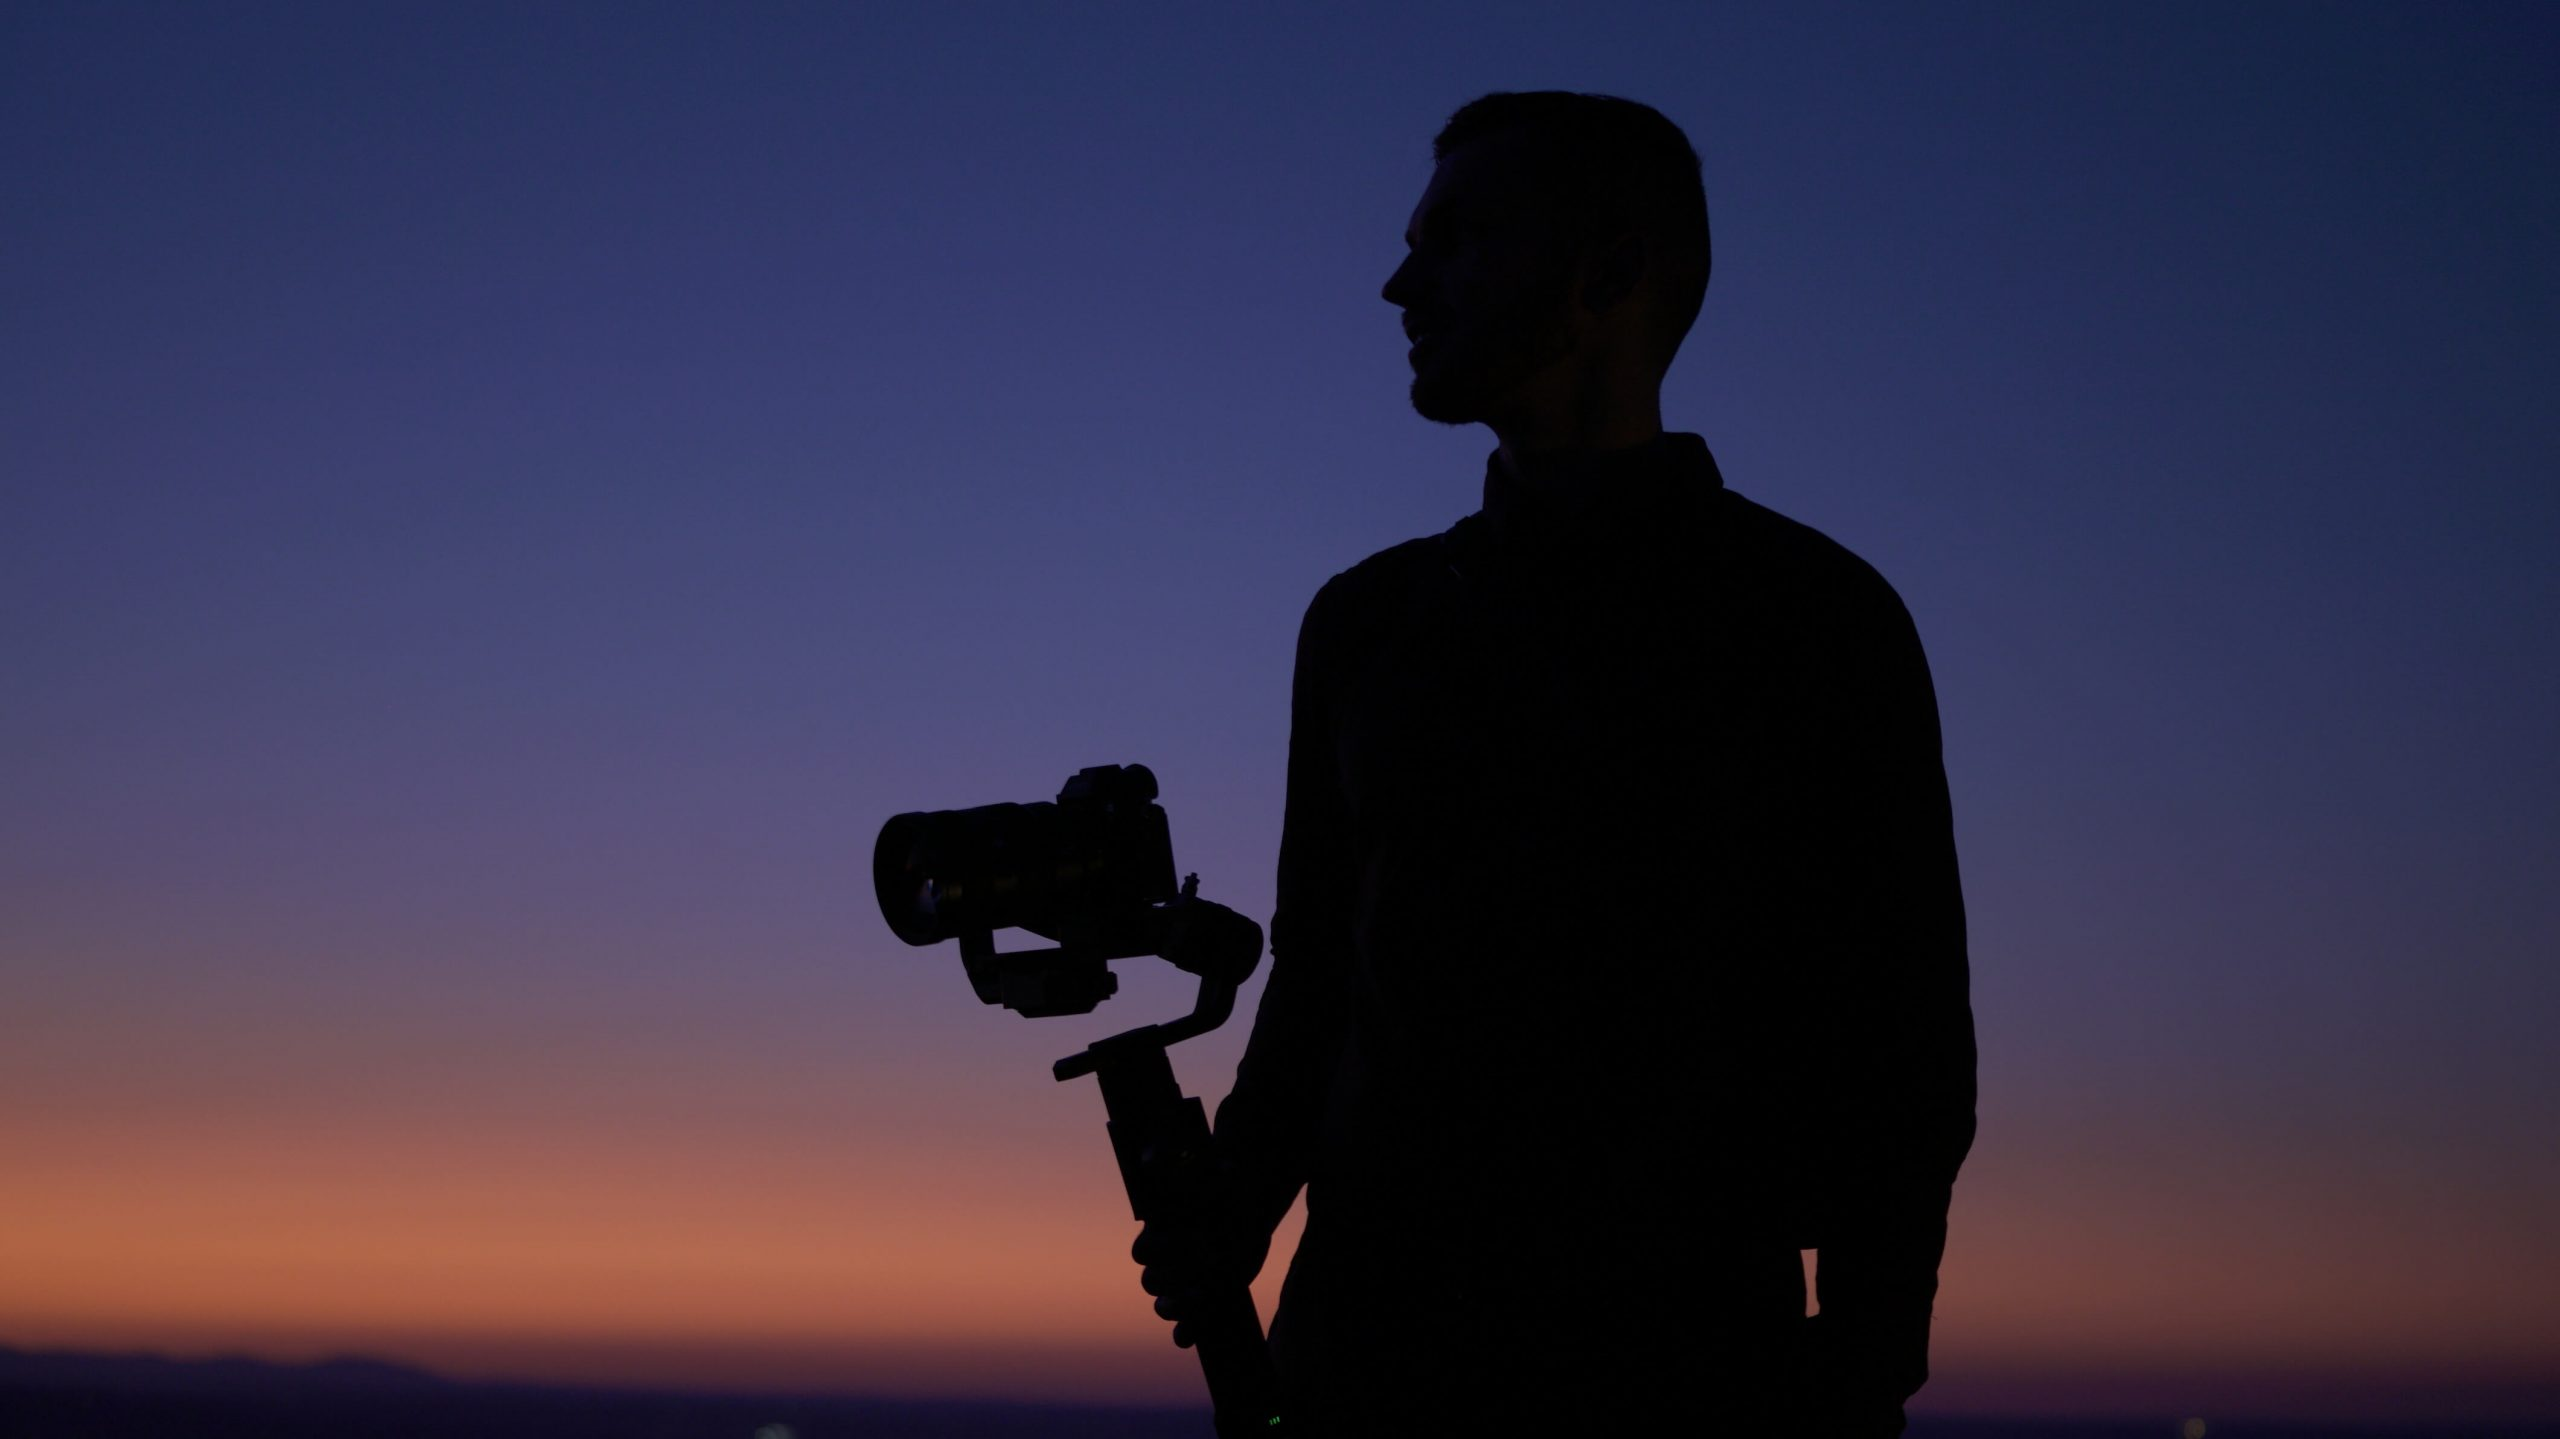 Videographer with gimbal on a sunset time